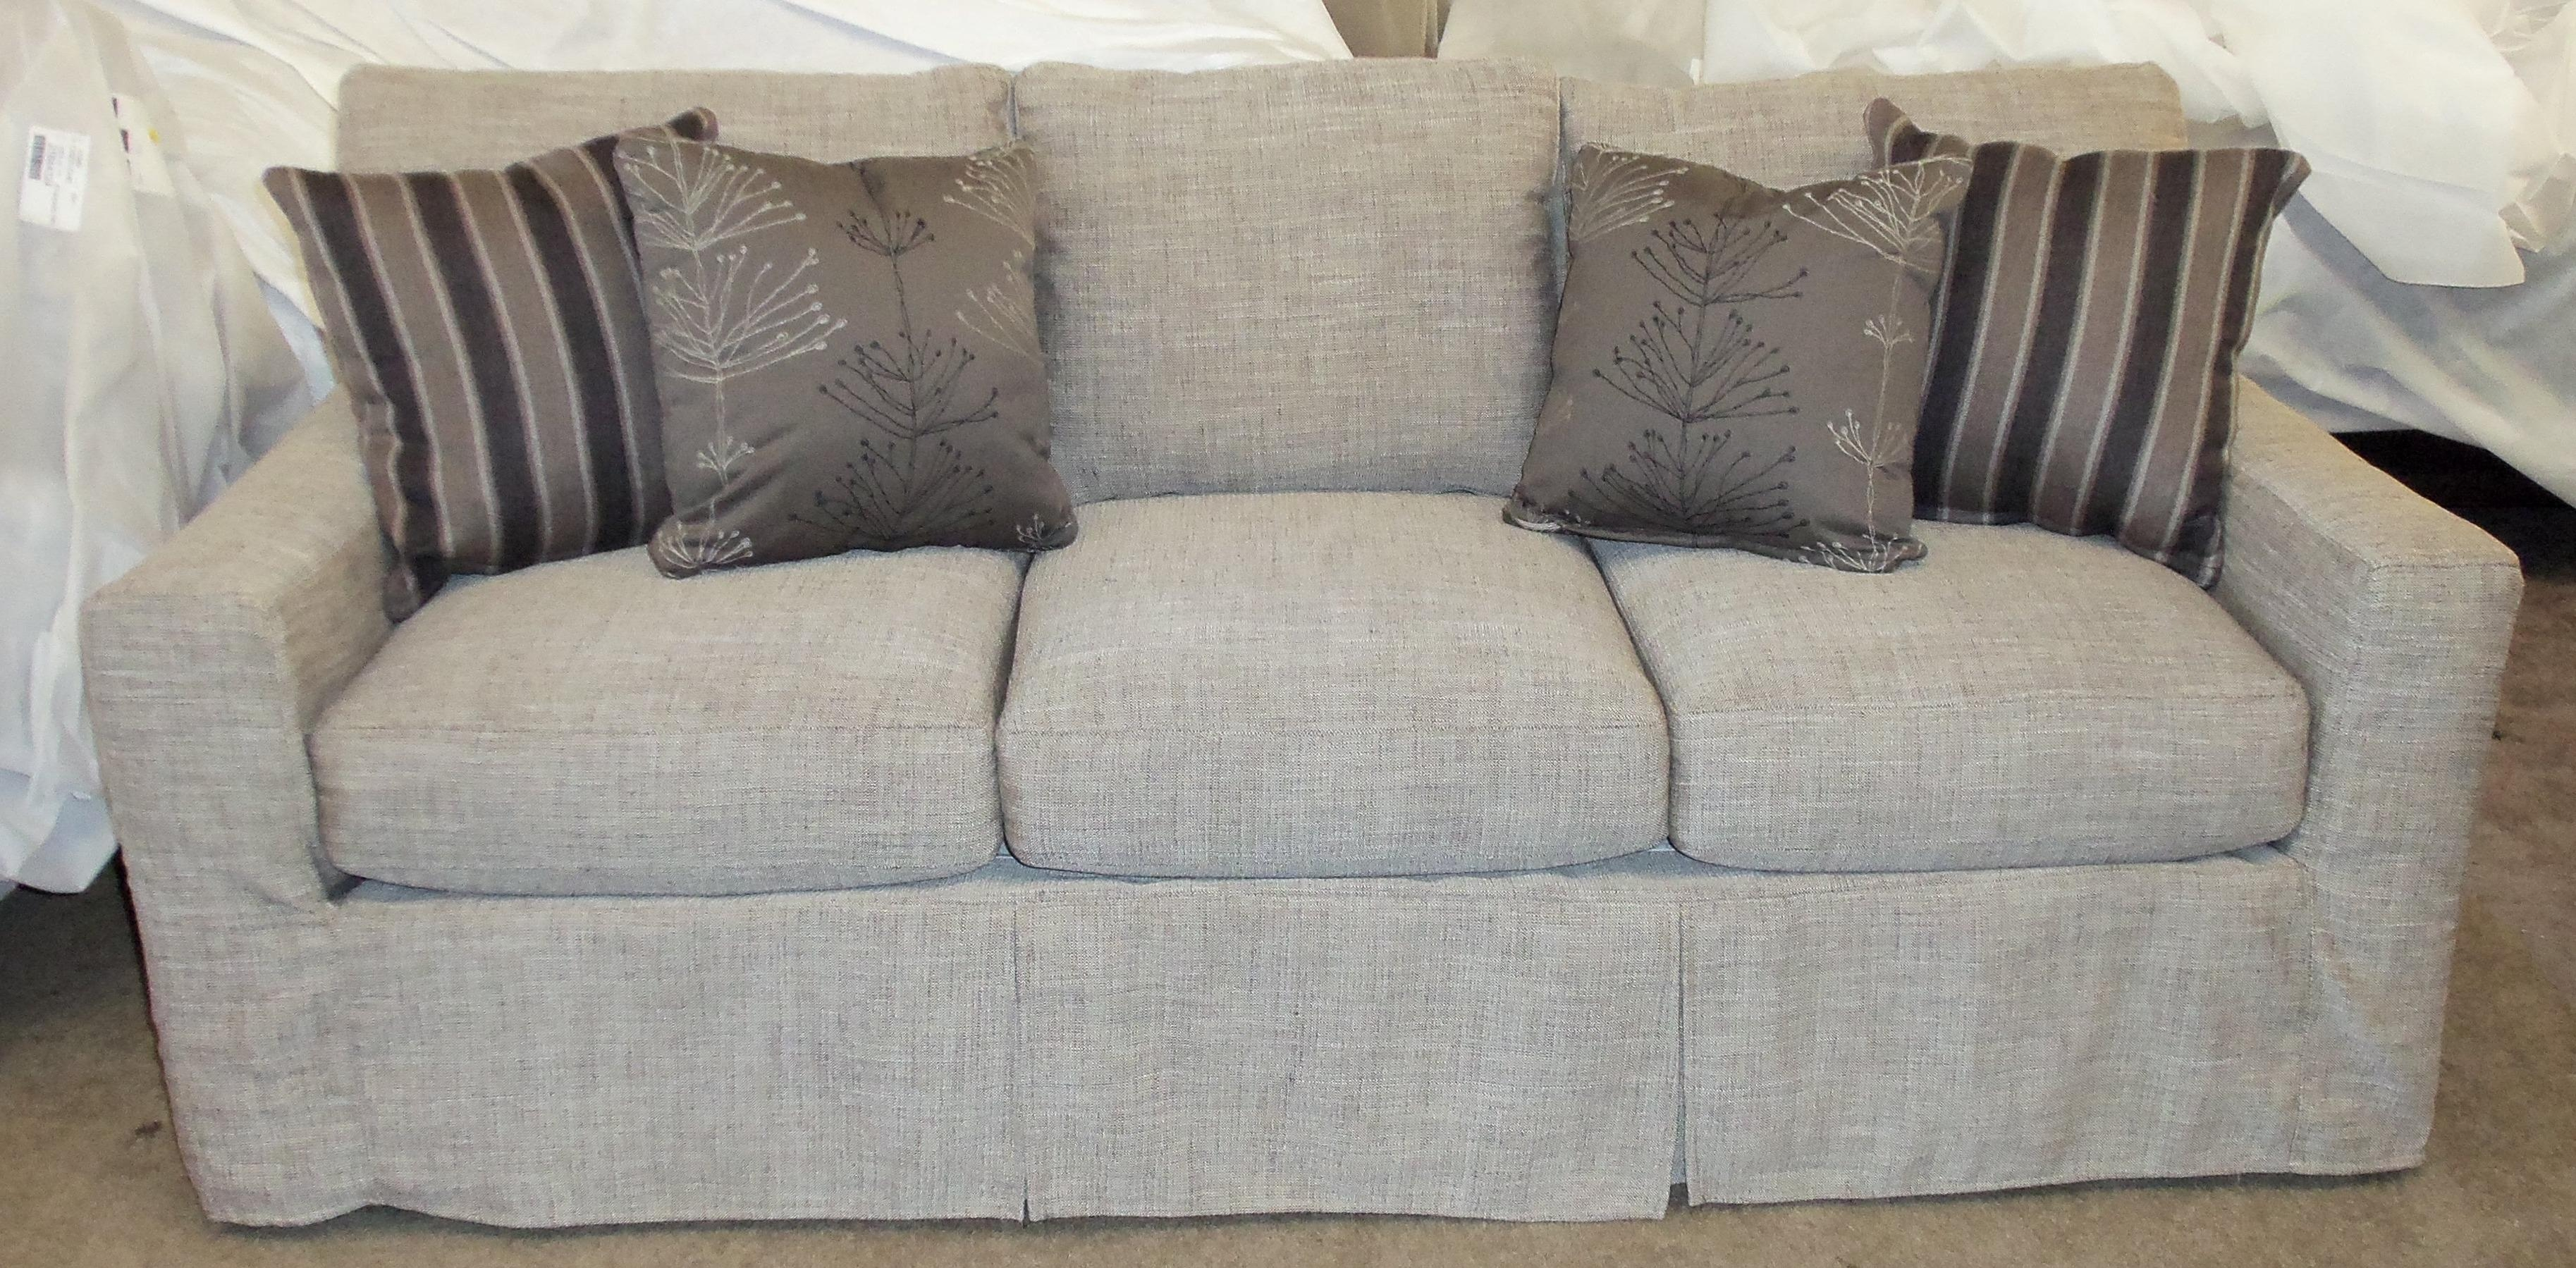 Furniture: Sofa Covers Walmart | Walmart Couch Covers | Slip With Slipcovers For Sofas And Chairs (Image 17 of 20)